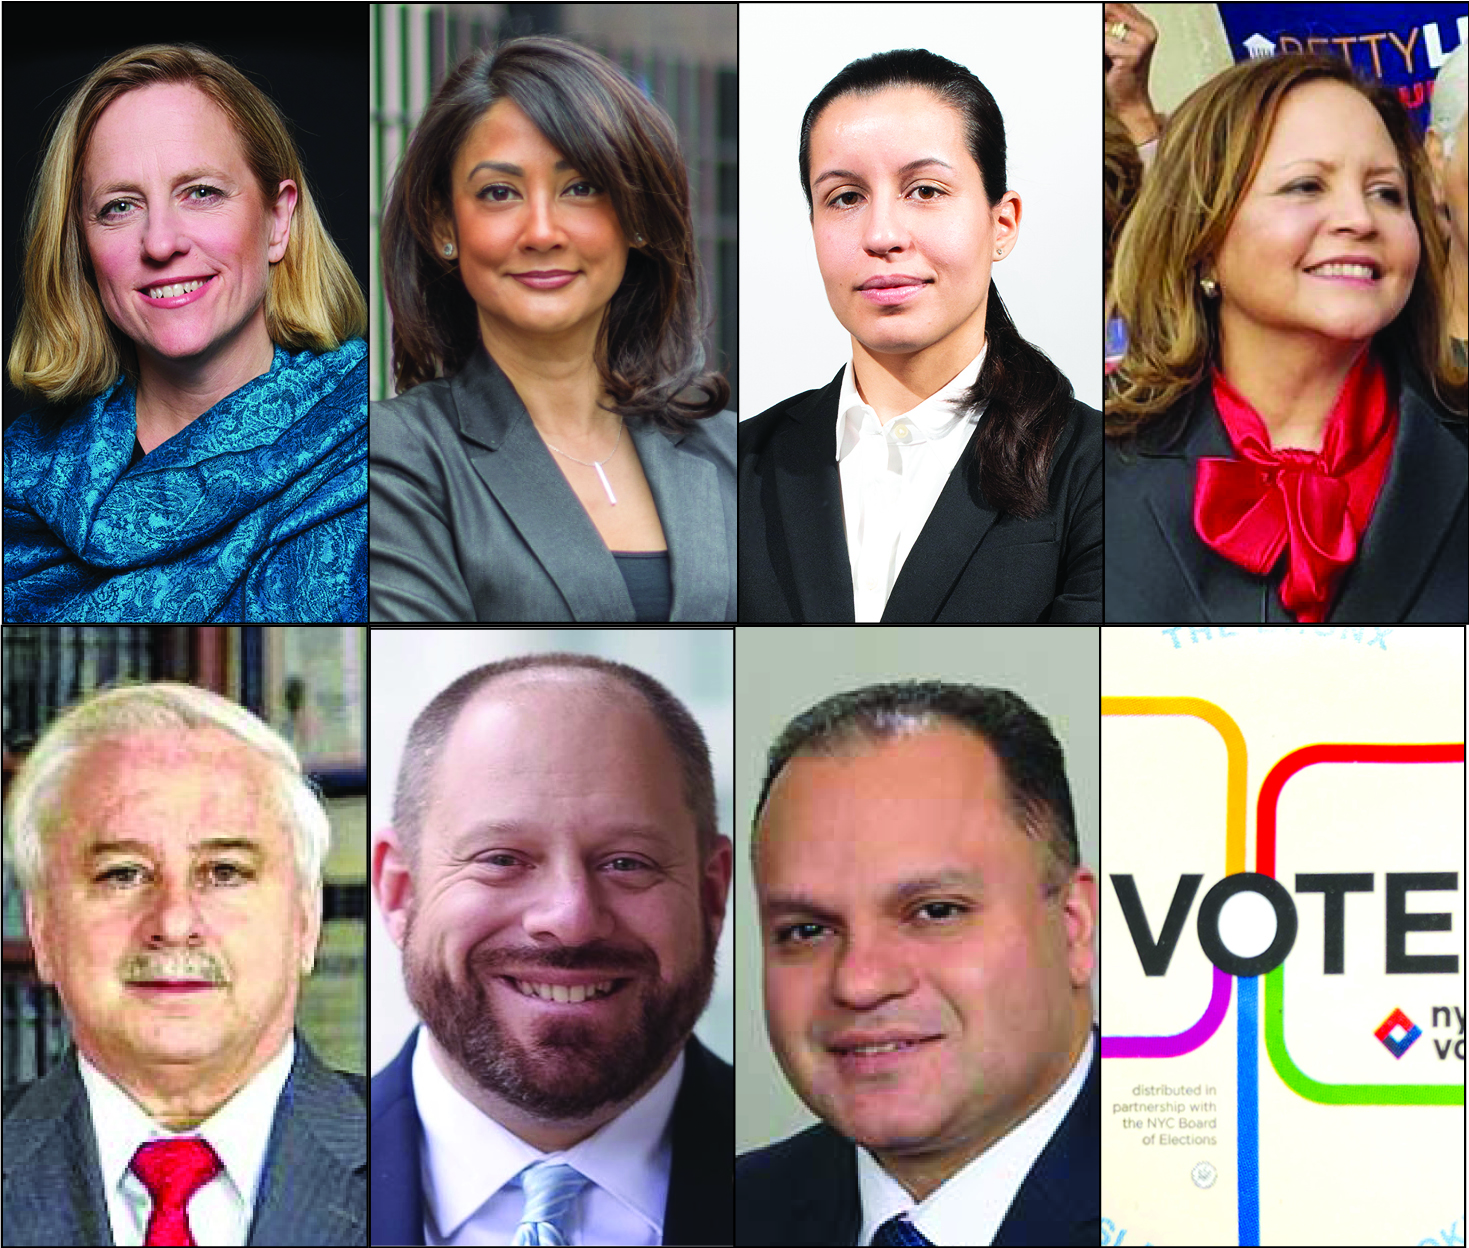 The seven Democratic candidates for Queens DA have raised millions of dollars, according to campaign finance disclosure reports filed last week. Photos via the campaigns